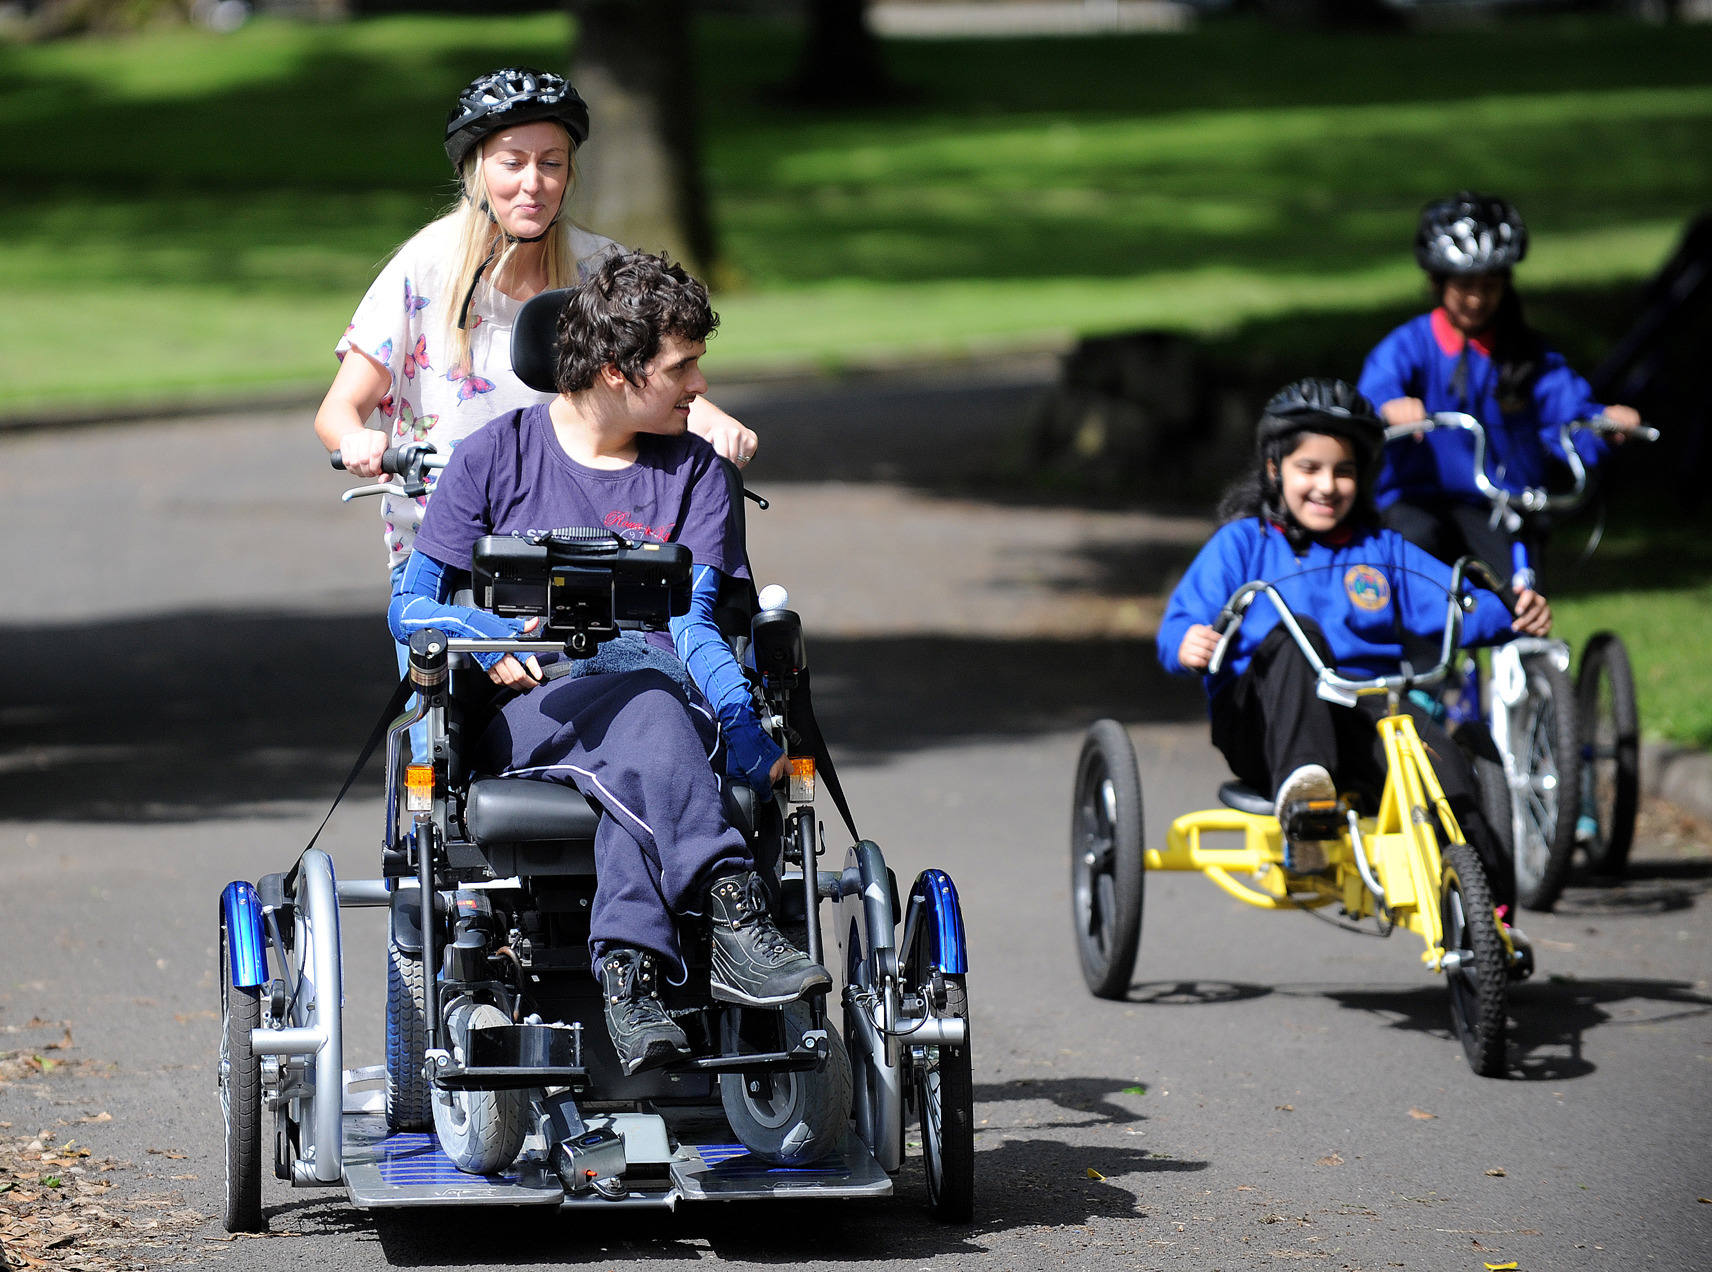 Young disabled people taking part in an adapted cycling session in the park